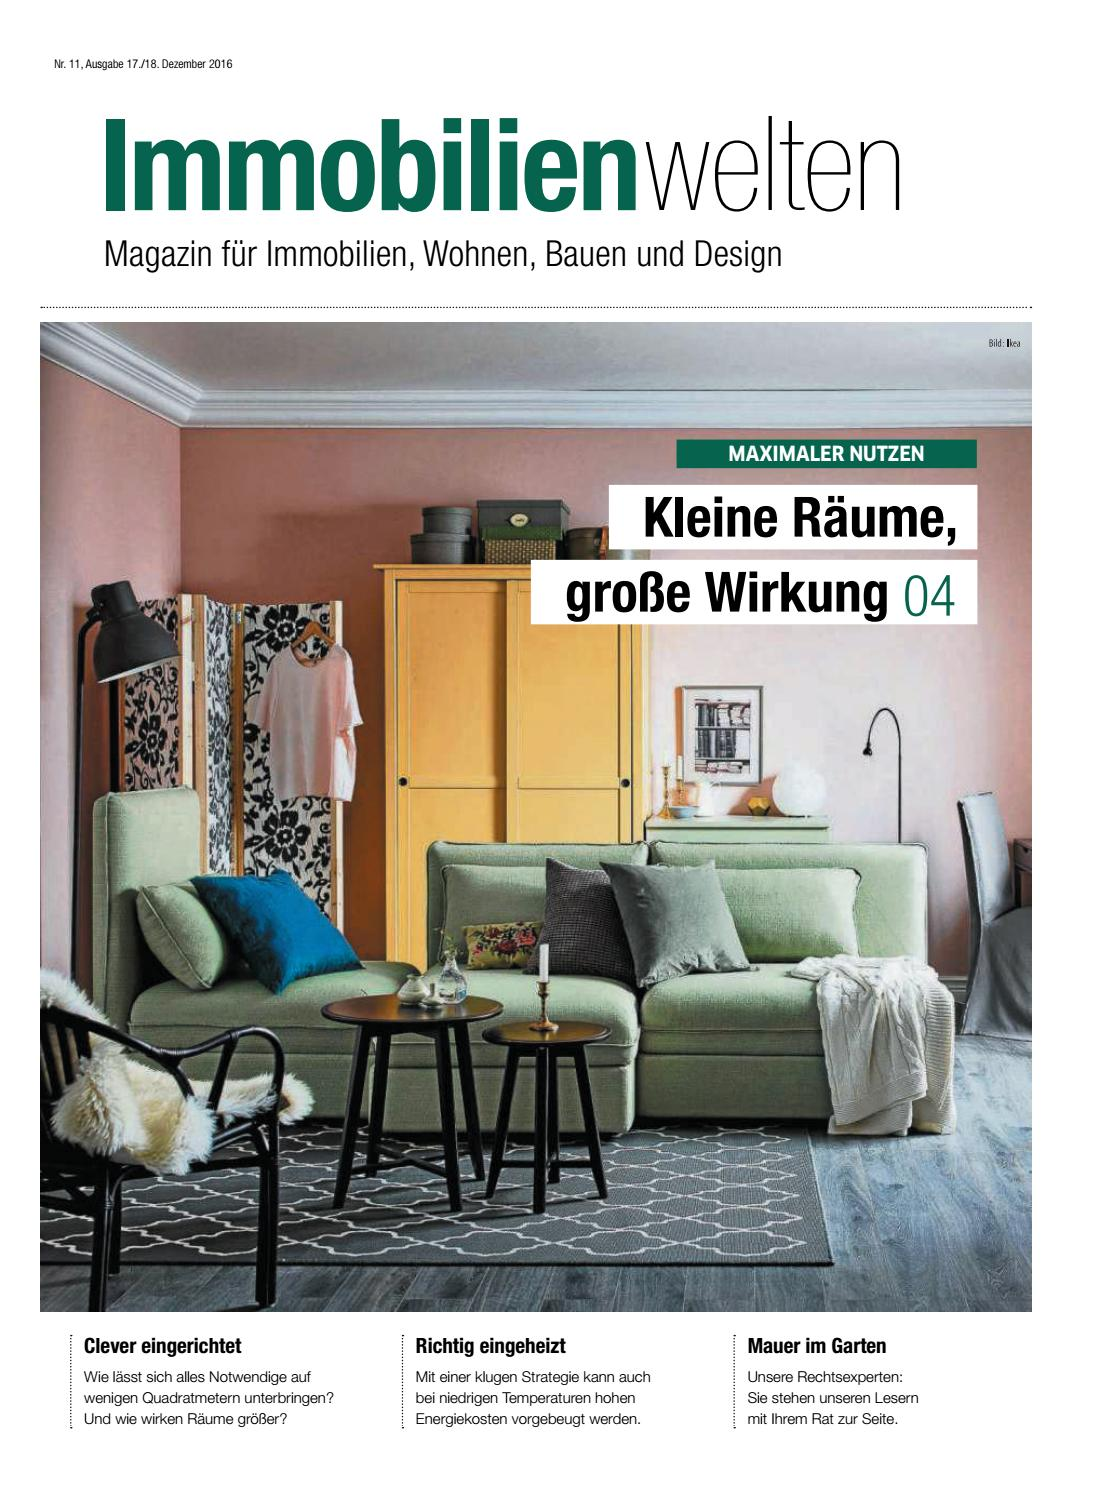 immobilienwelten kleine r ume gro e wirkung by berlin medien gmbh issuu. Black Bedroom Furniture Sets. Home Design Ideas